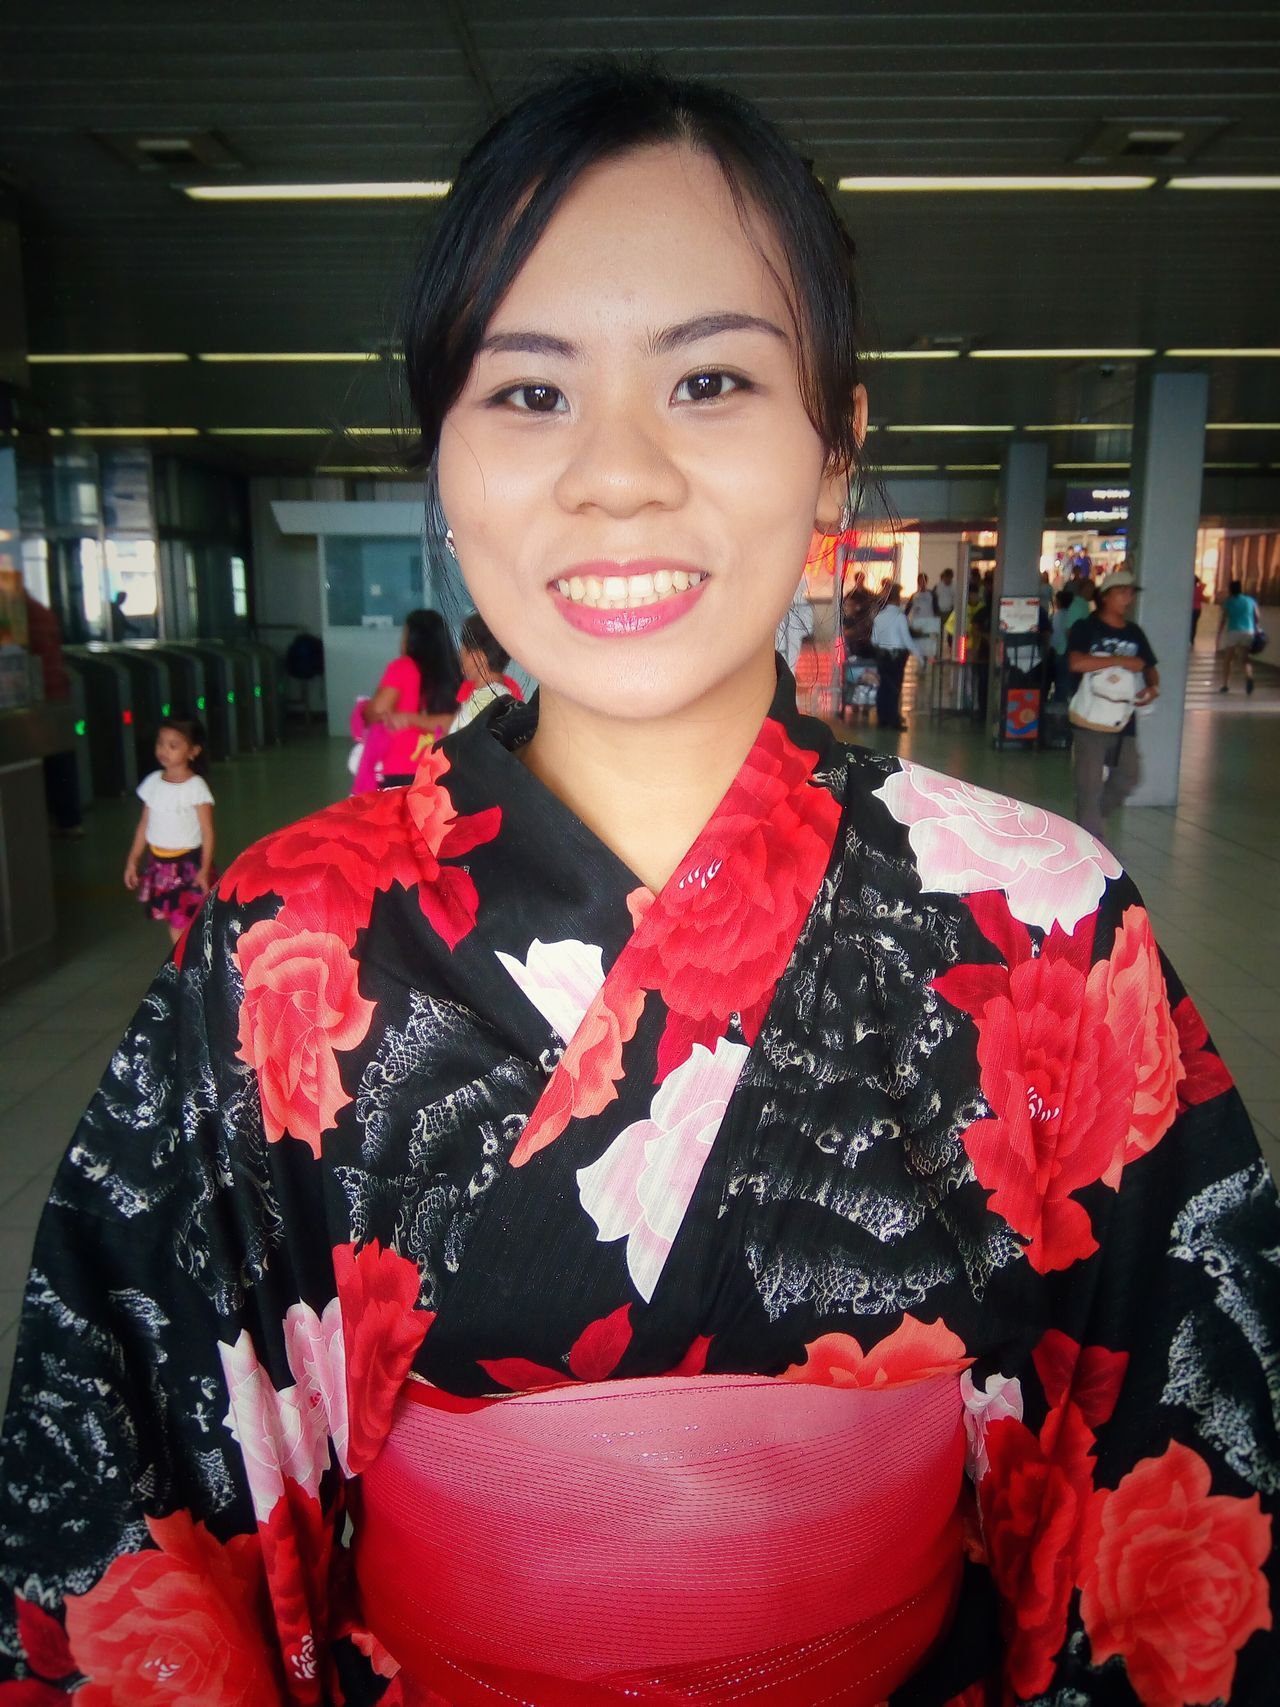 Beautiful girl wearing a Kimono Kimono Attire For The Day Commuting Running Late EyeEm Best Shots Eyeem Philippines Manila Portrait Of A Woman The Portraitist - 2016 EyeEm Awards Portrait Photography Check This Out Eye4photography  Eyeem Shot Urban Japanese  Beautiful Style Design Everday Emotions